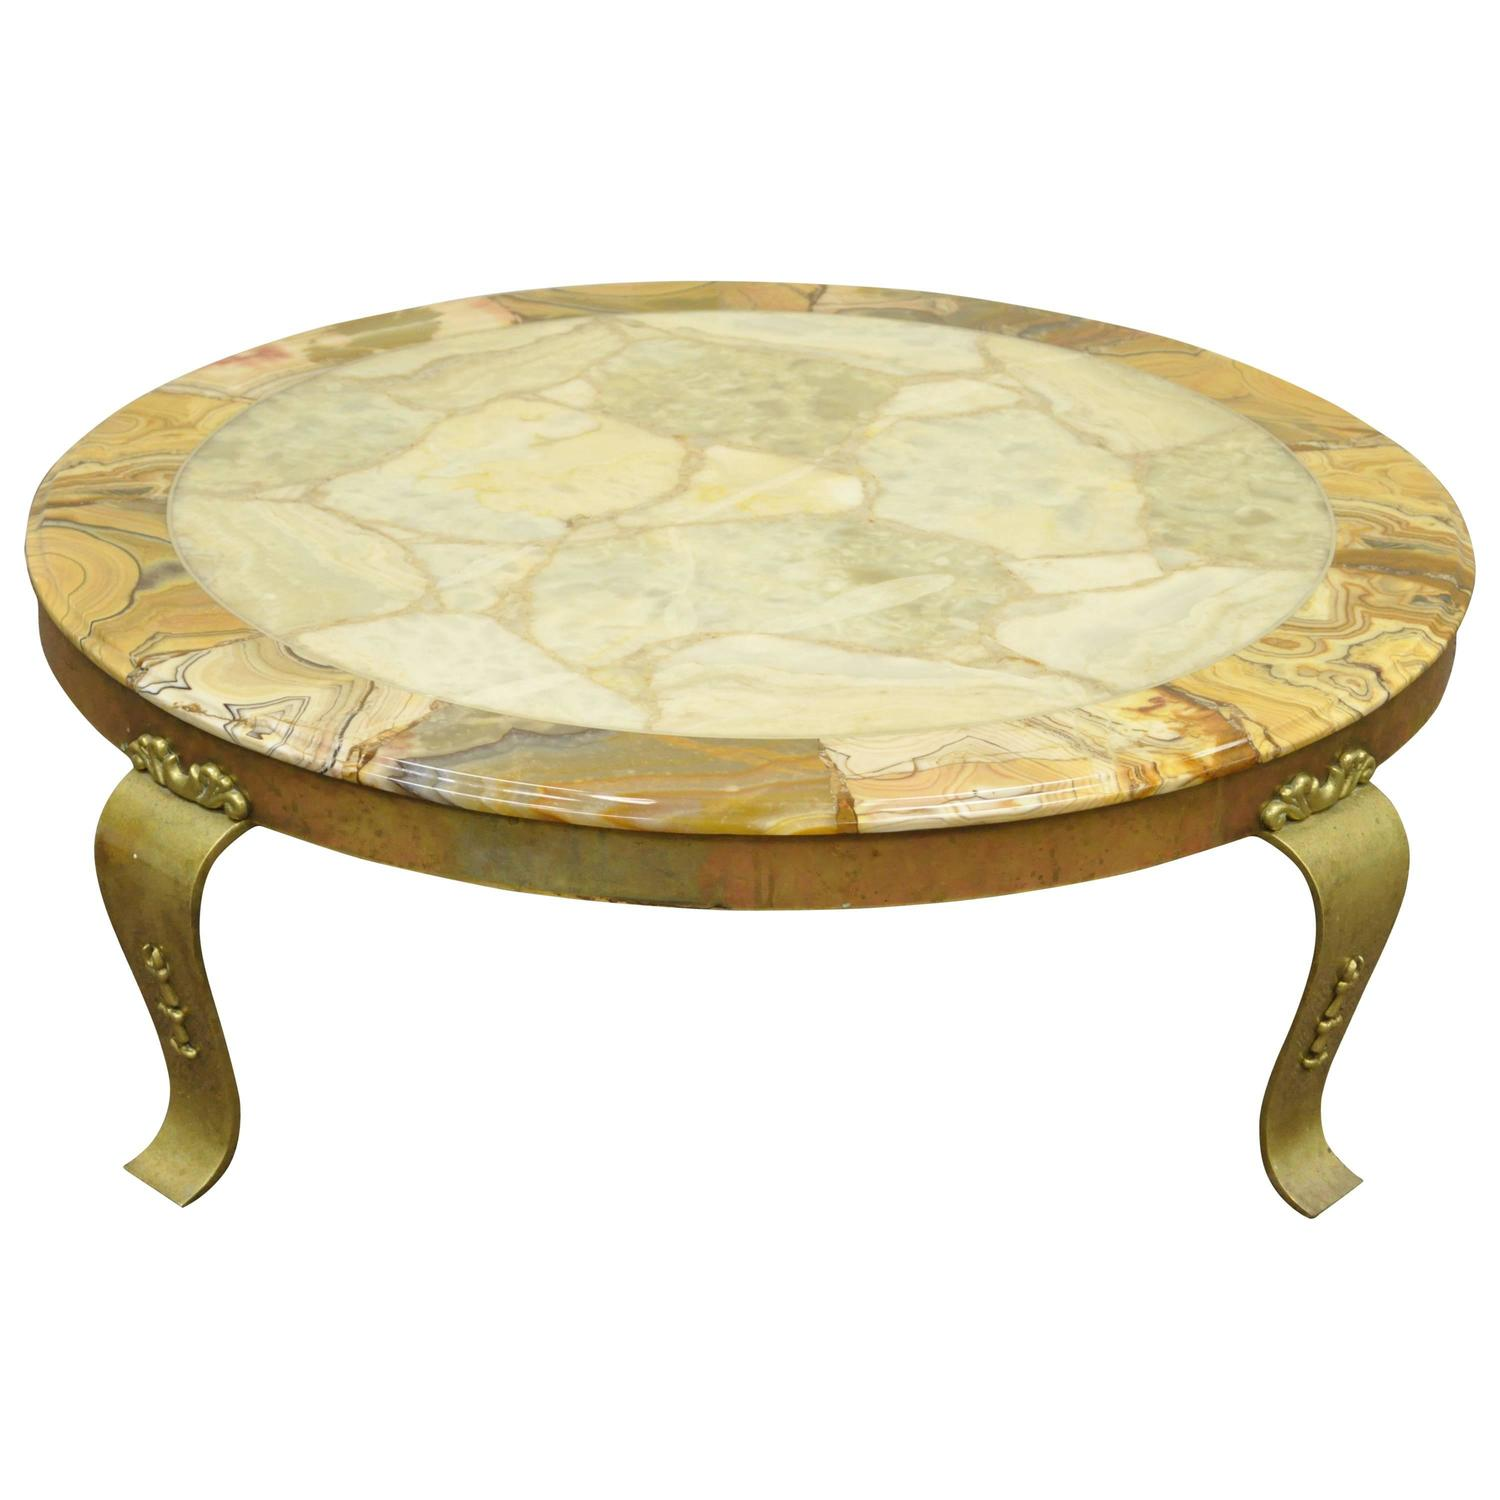 Elegant yx and Brass Coffee Table For Sale at 1stdibs